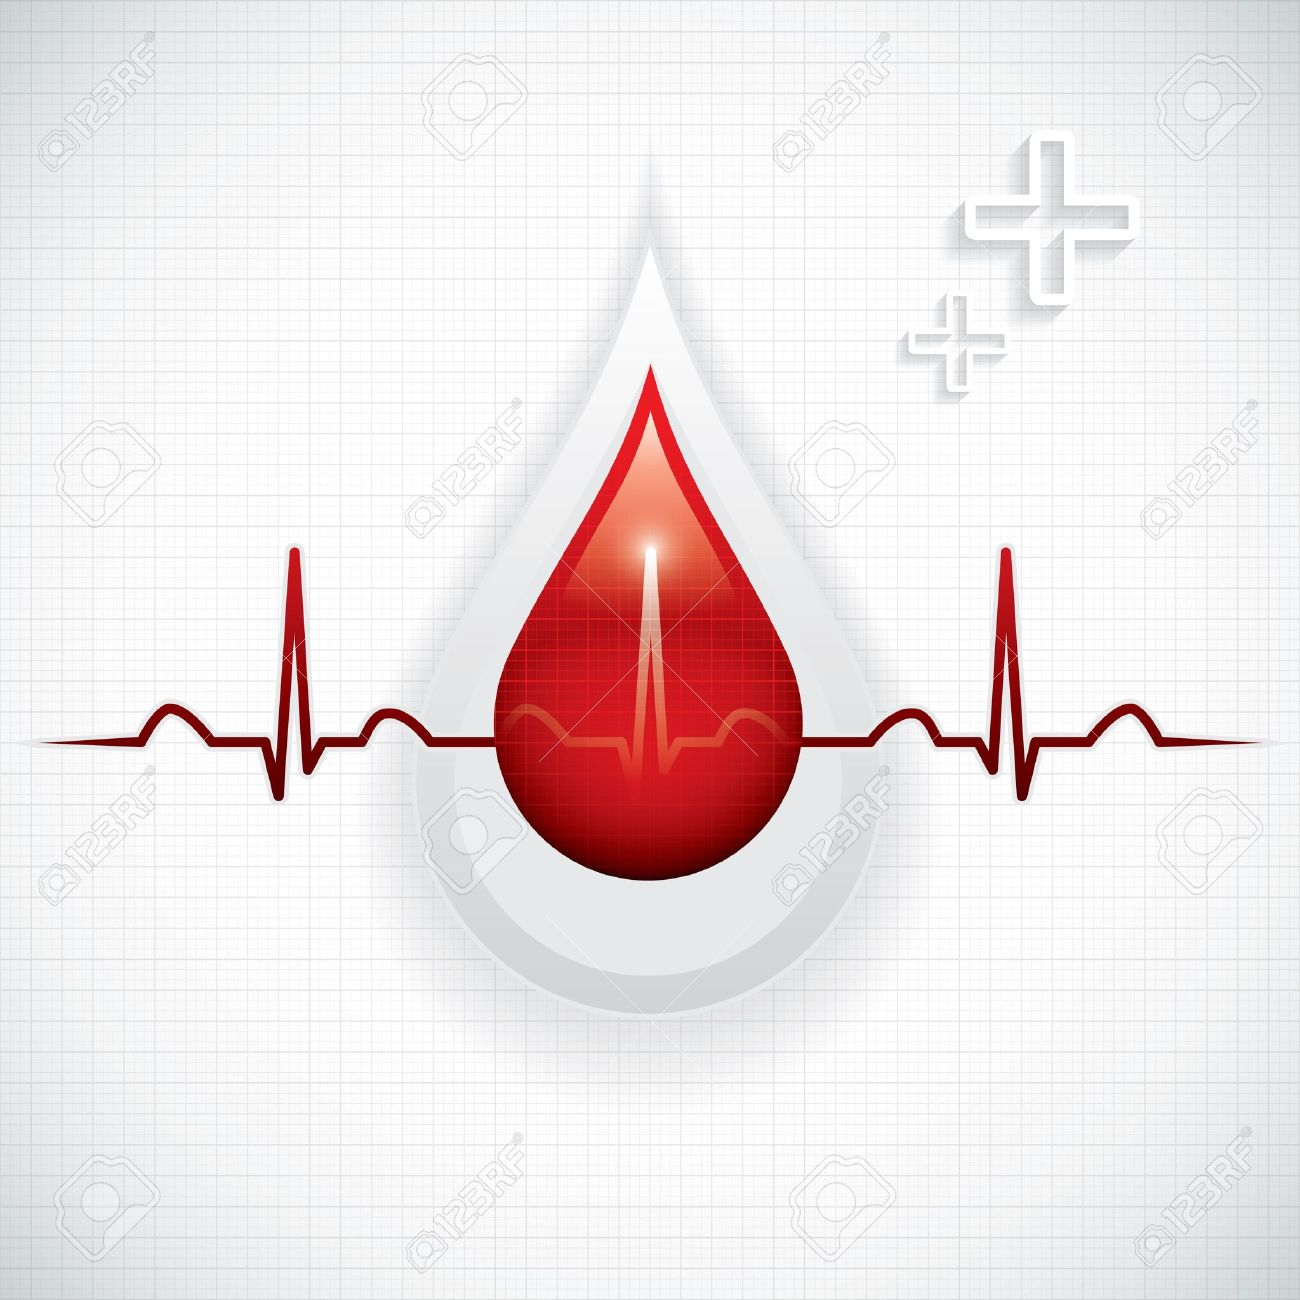 blood donation stock photos pictures royalty blood blood donation blood donation medical background illustration